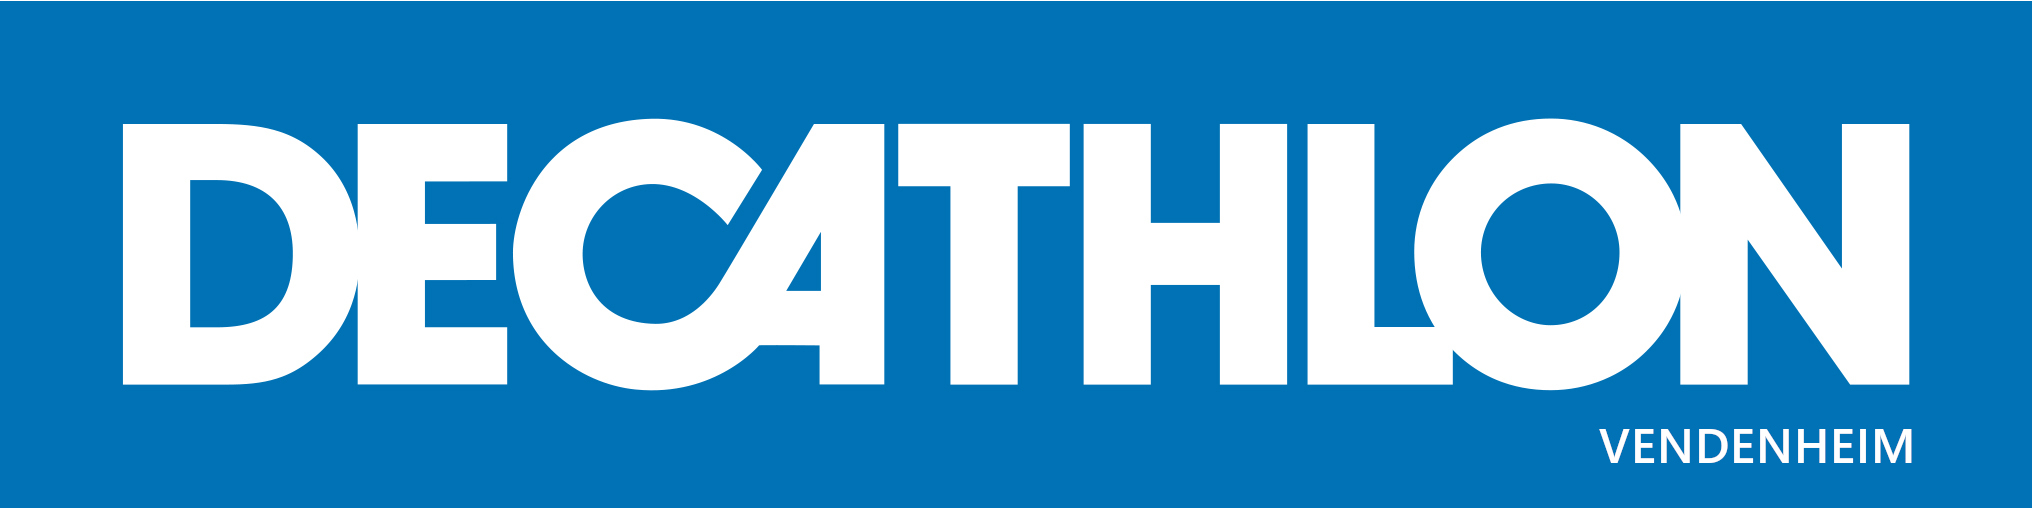 Decathlon Vendenheim